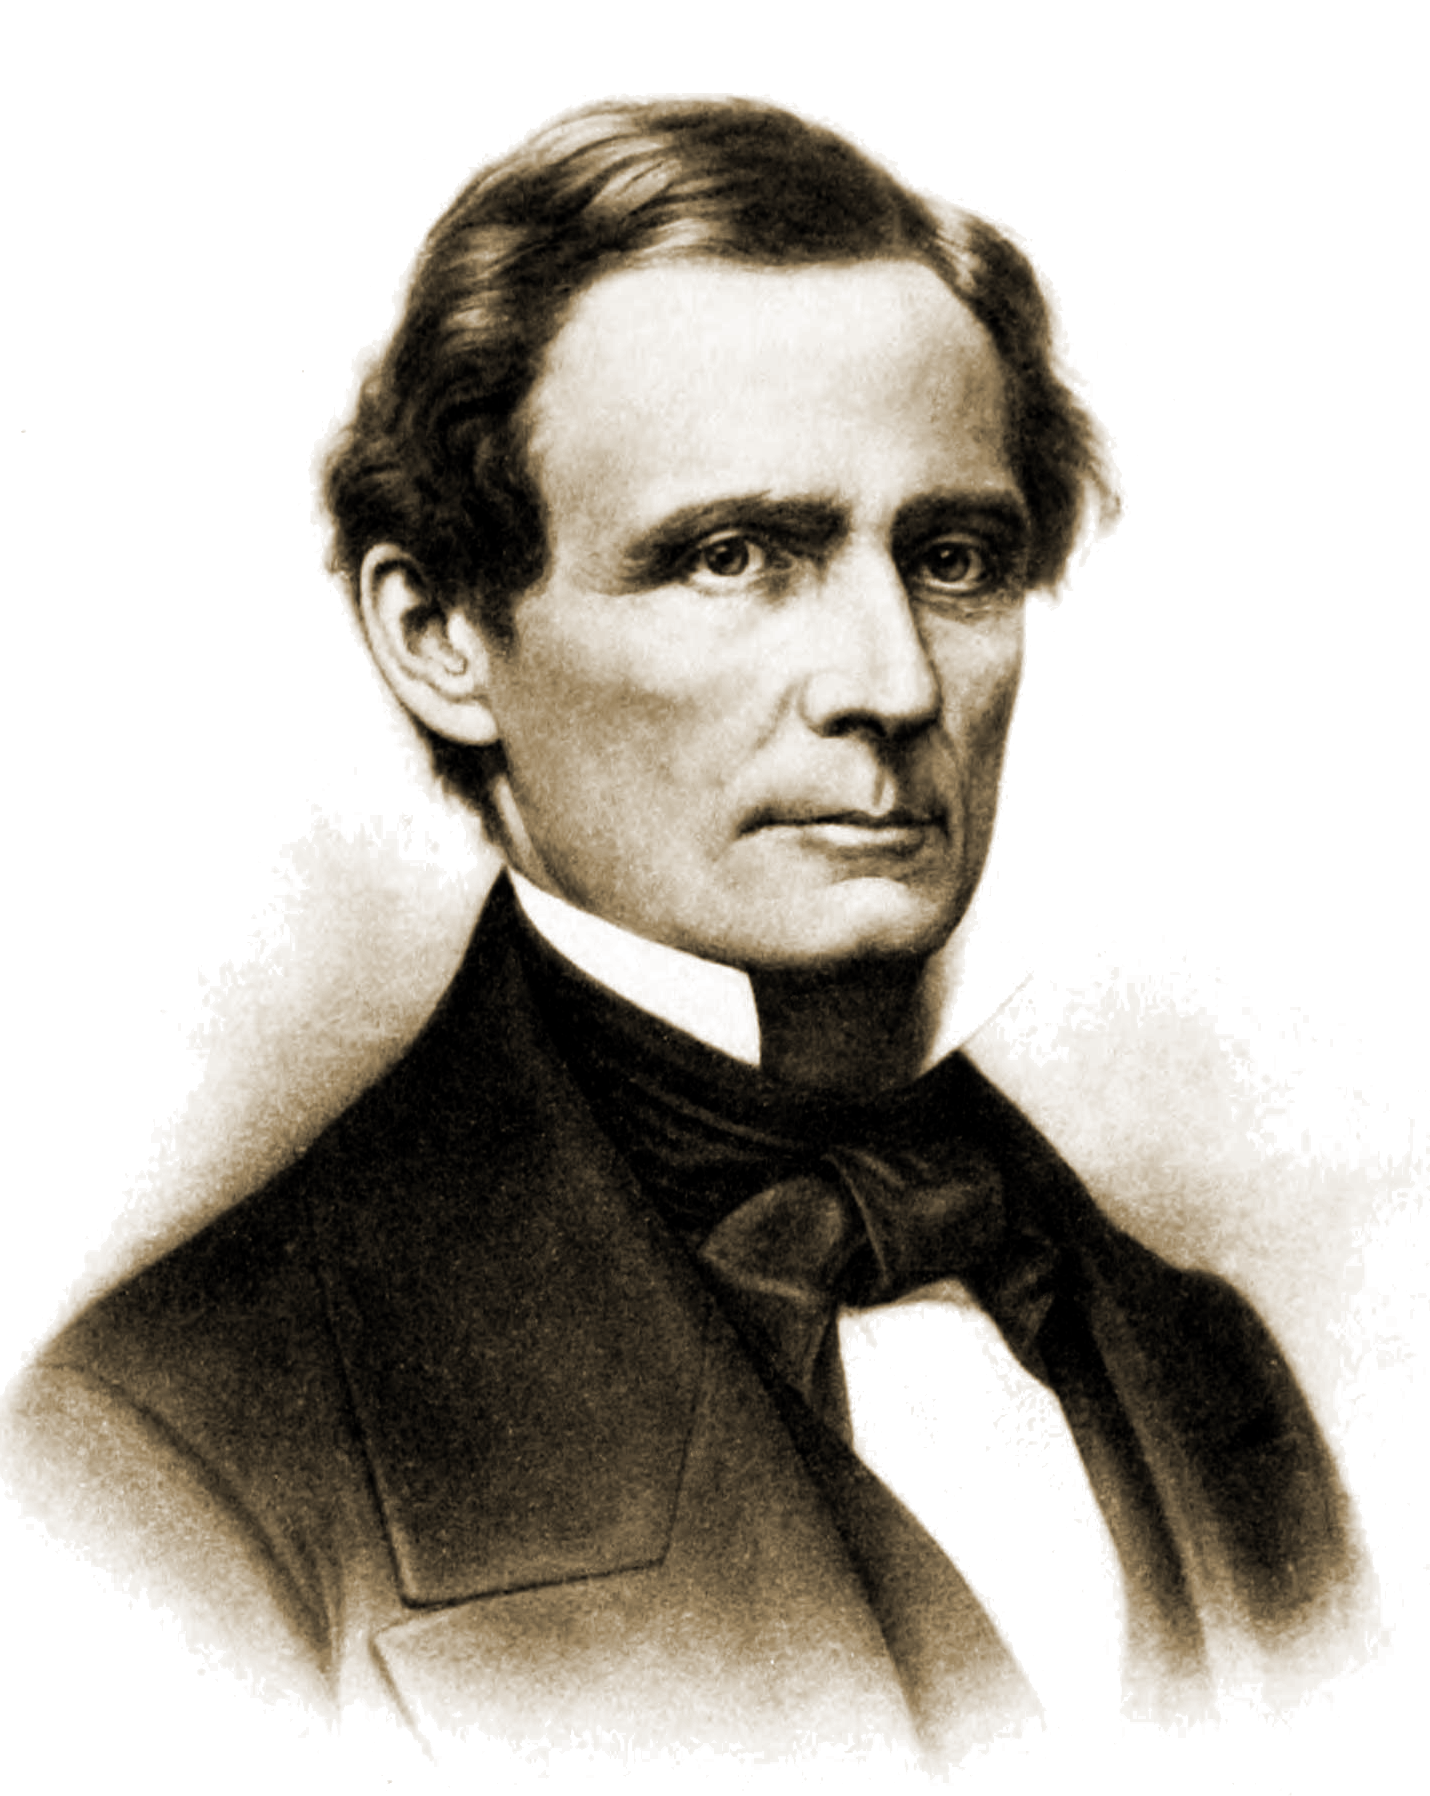 a brief biography of jefferson davis Jefferson davis biography jefferson davis was the only president of the confederate states of america, the group of southern states that seceded from the united states and prompted the civil war (1861-65) davis was born in.